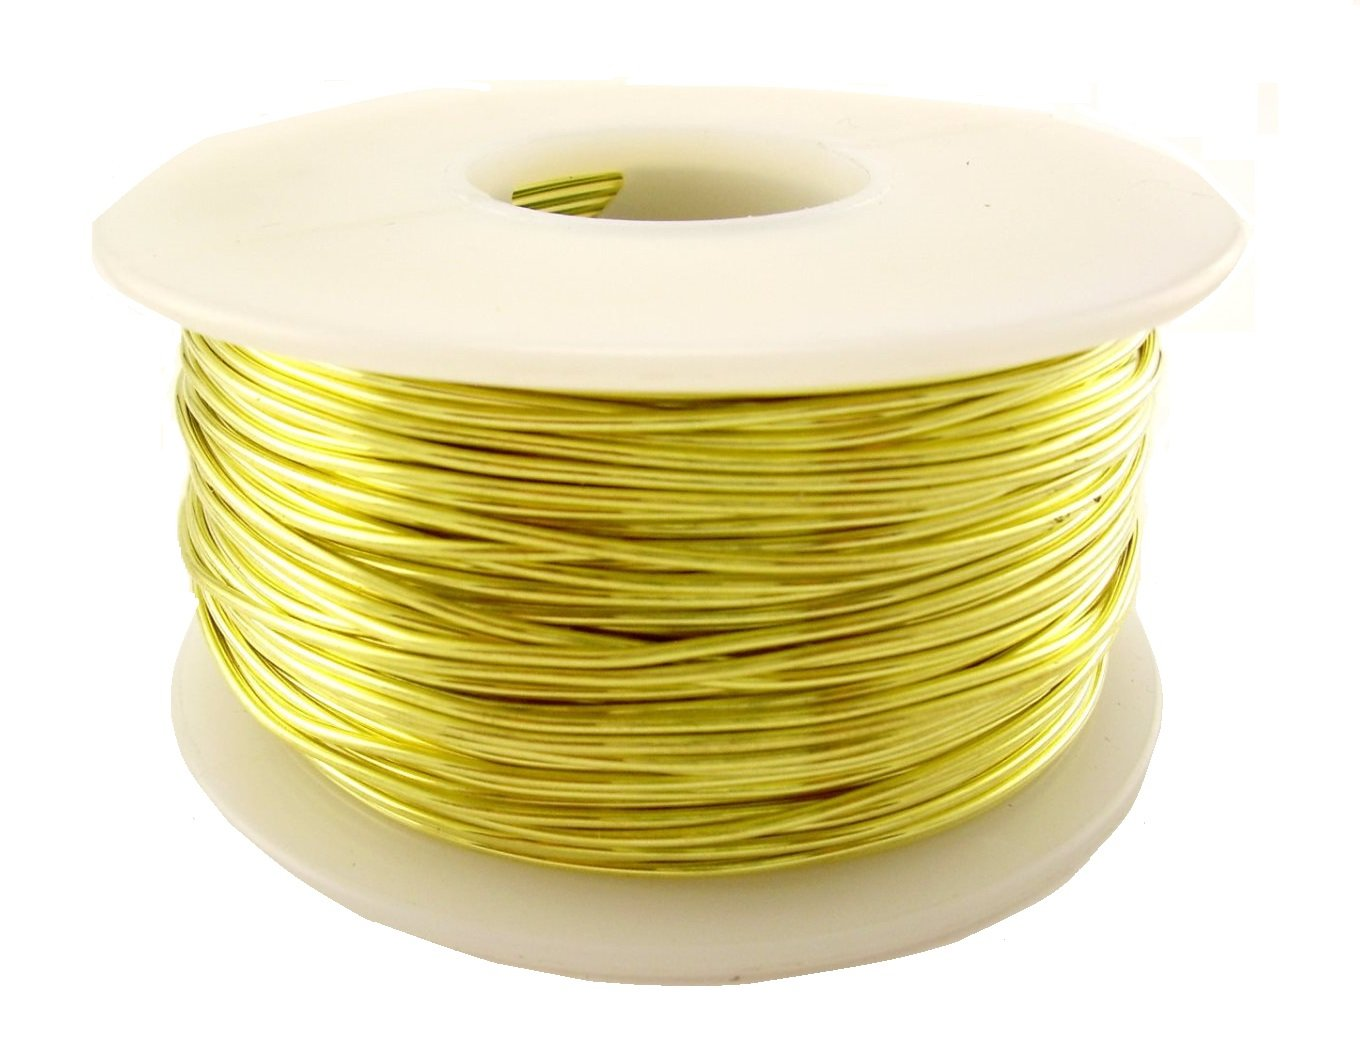 26 Ga Brass Round Wire 1280 Ft Spool (Dead Soft) Pack Of 1- New by STL Group INC